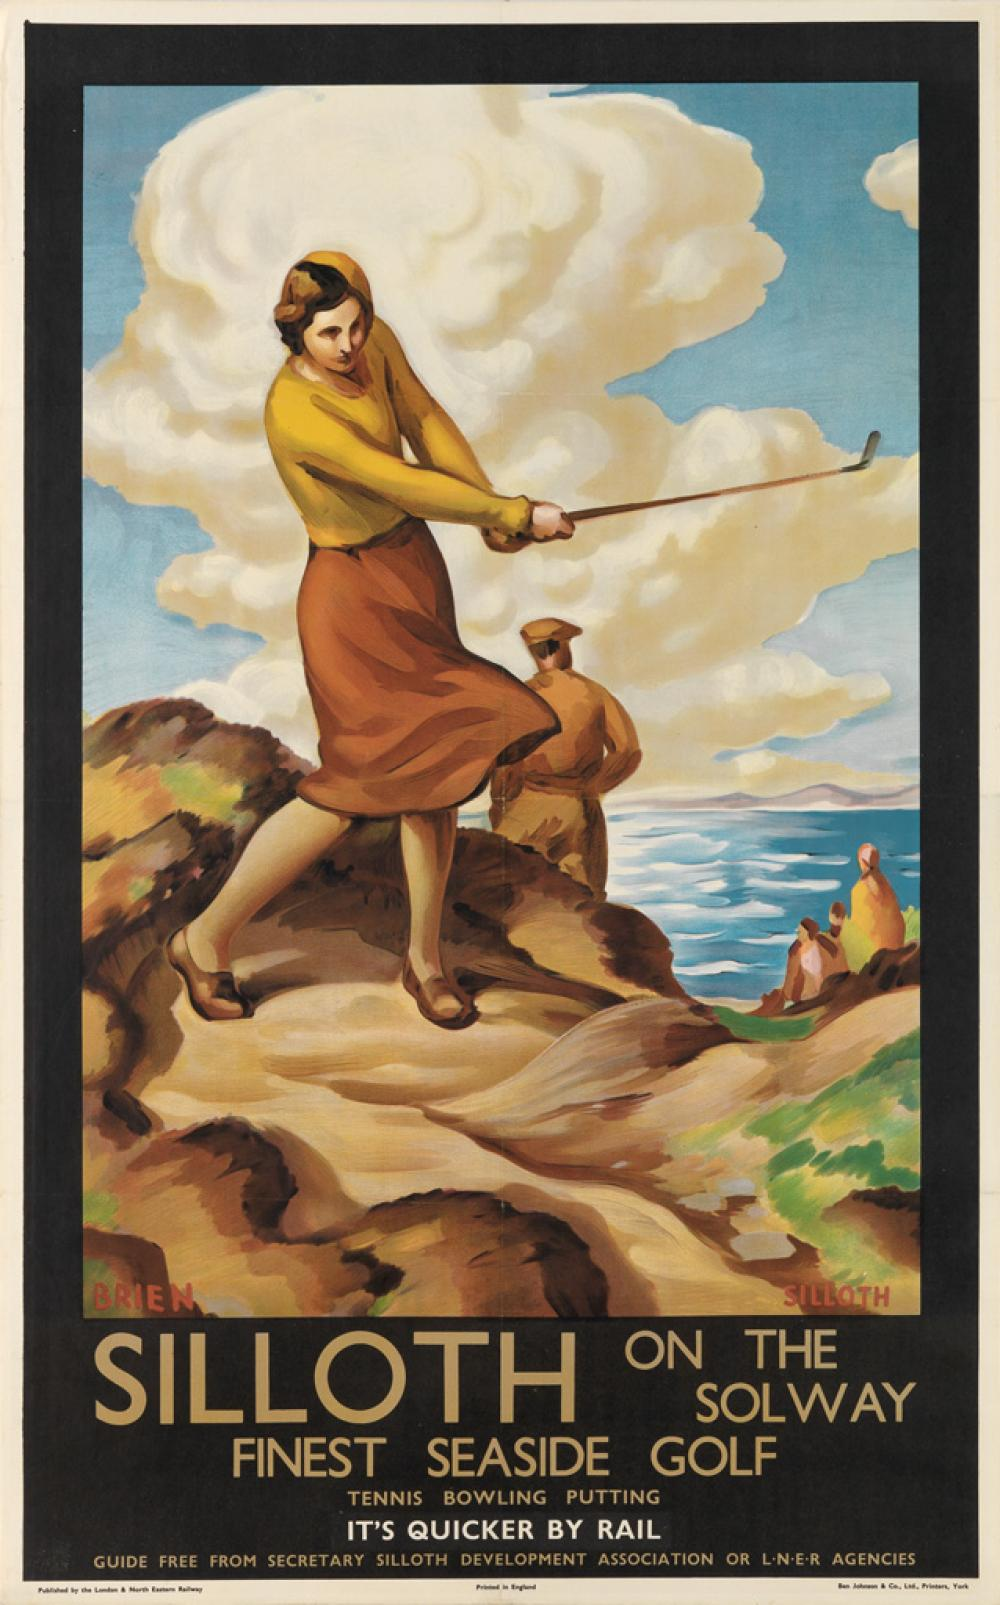 G. STANISLAUS BRIEN (DATES UNKNOWN). SILLOTH ON THE SOLWAY / FINEST SEASIDE GOLF. 1932. 40x24 inches, 101x63 cm. Ben Johnson & Co., Ltd